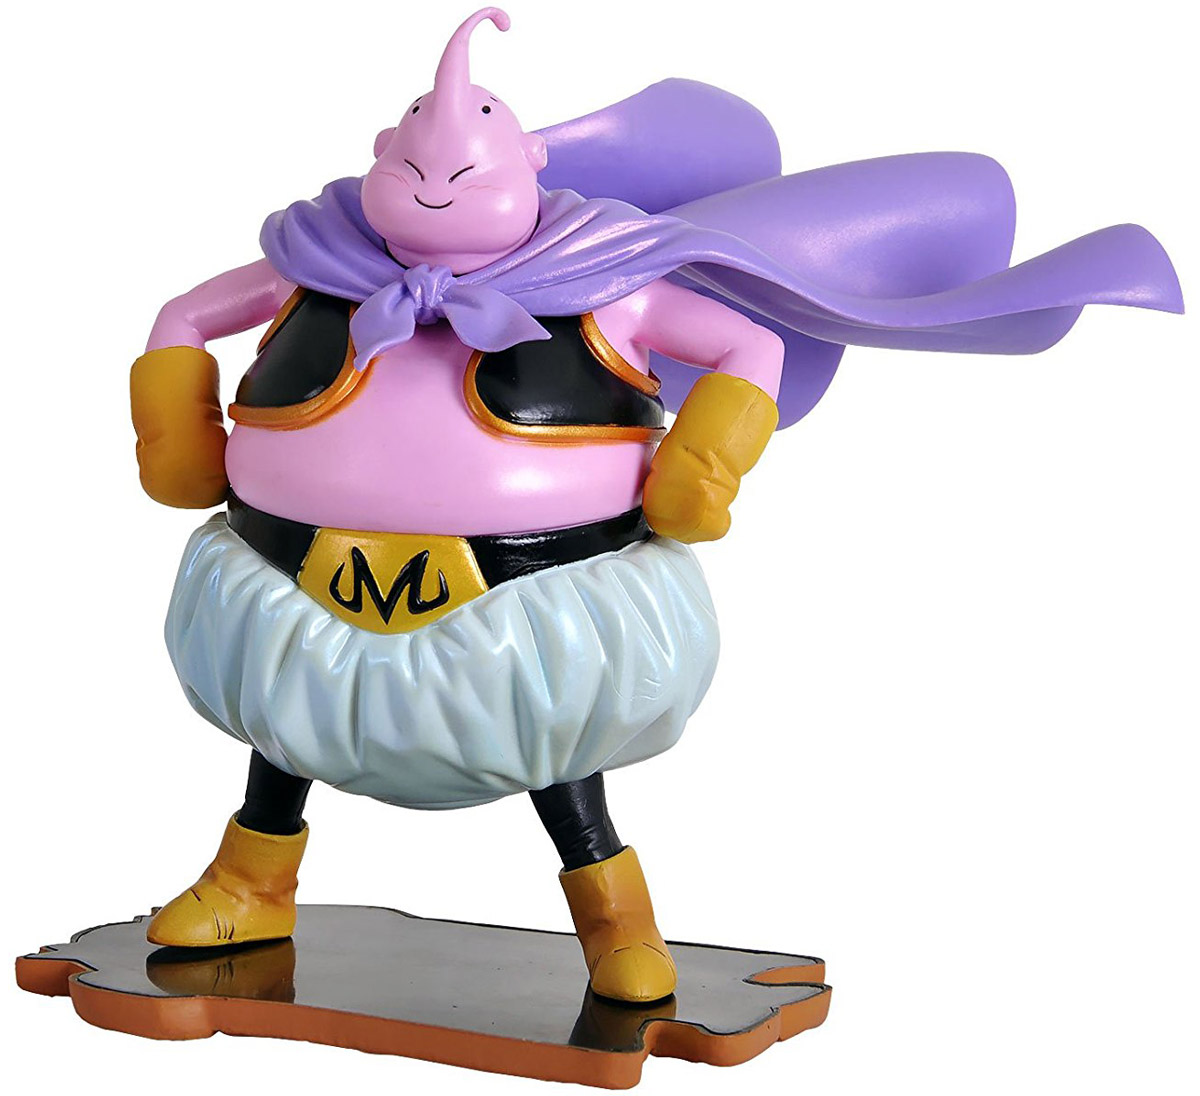 Bandai Фигурка Dragon Ball Z Pastel Color ver. Majin Boo dragon ball z msp master stars piece the son goku chocolate manga ver pvc figure collectible model toy 27cm